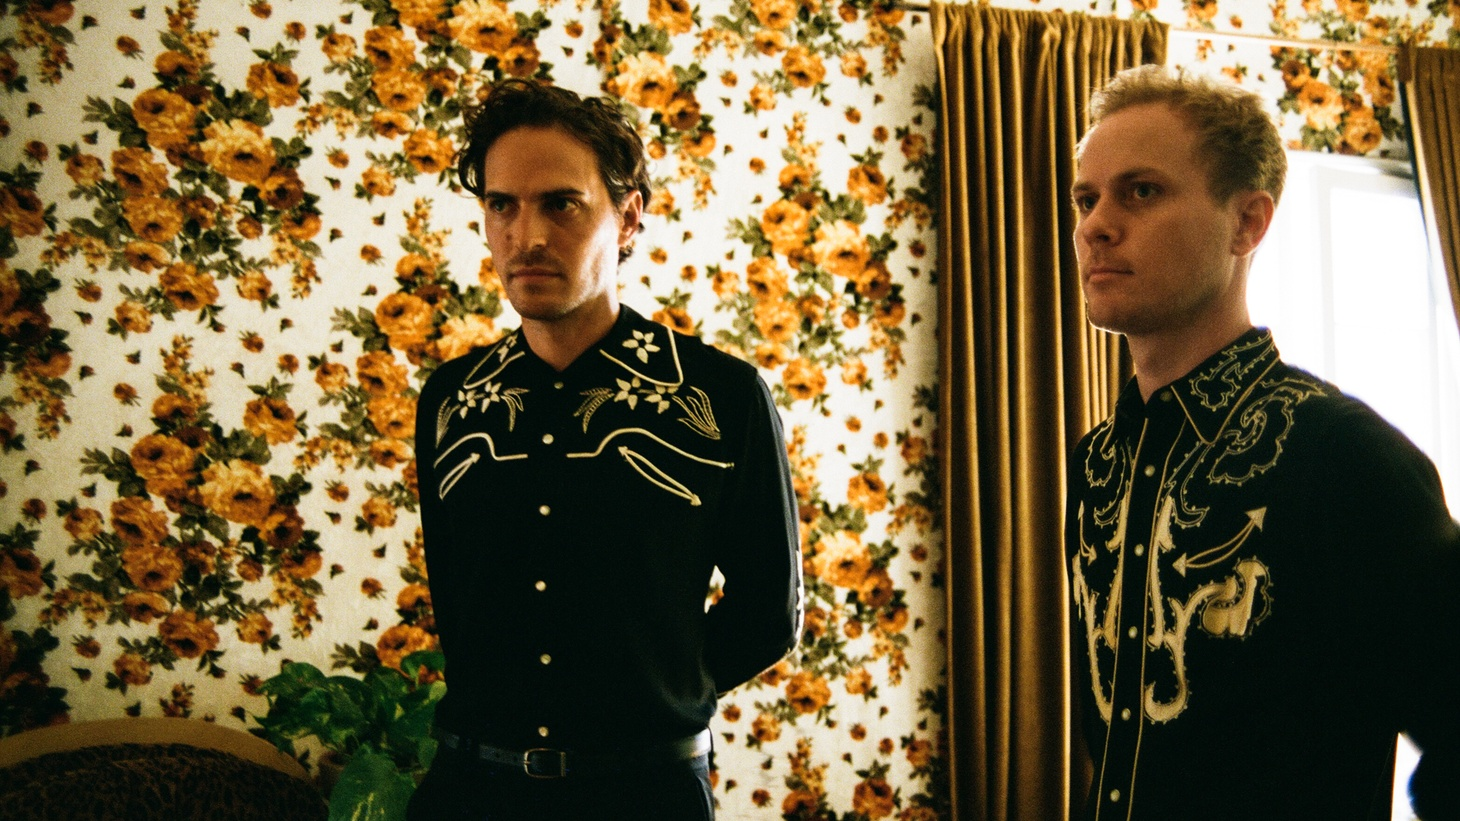 """KCRW Music brings you the new on-air series """"Freeform Fridays"""" featuring mixes from special guests and KCRW DJs.   This week, Los Angeles duo Michael David and Tyler Blake — better known as Classixx — bring their sound to our series."""